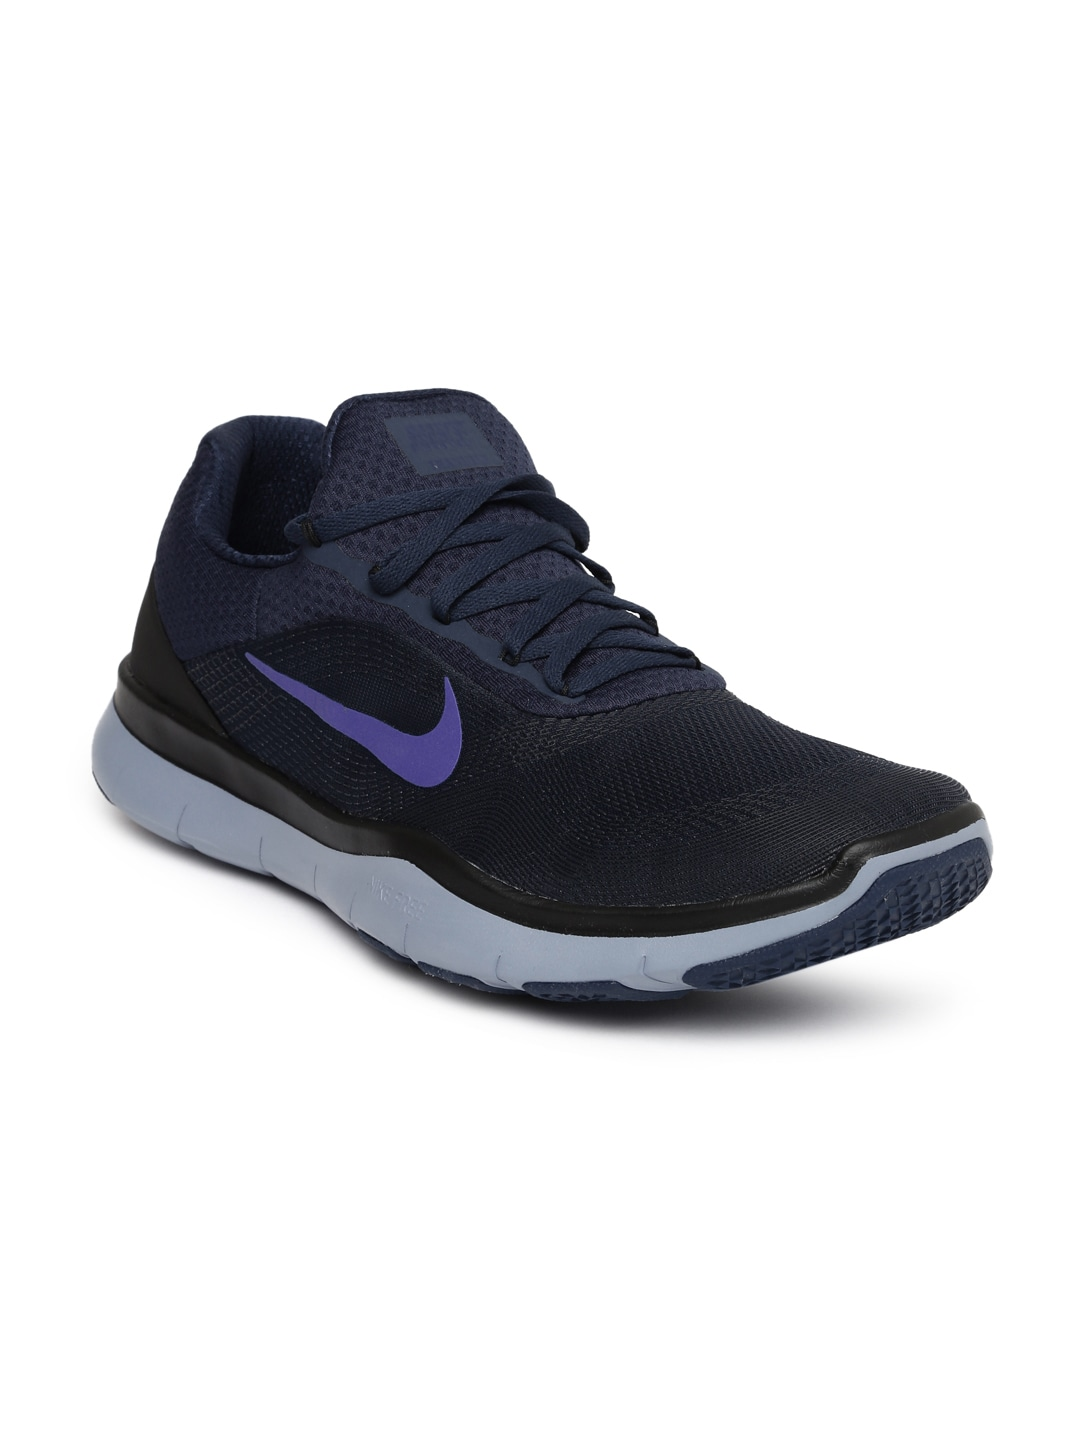 check out 2486b f77f2 Nike Skipper Sports Shoes - Buy Nike Skipper Sports Shoes online in India